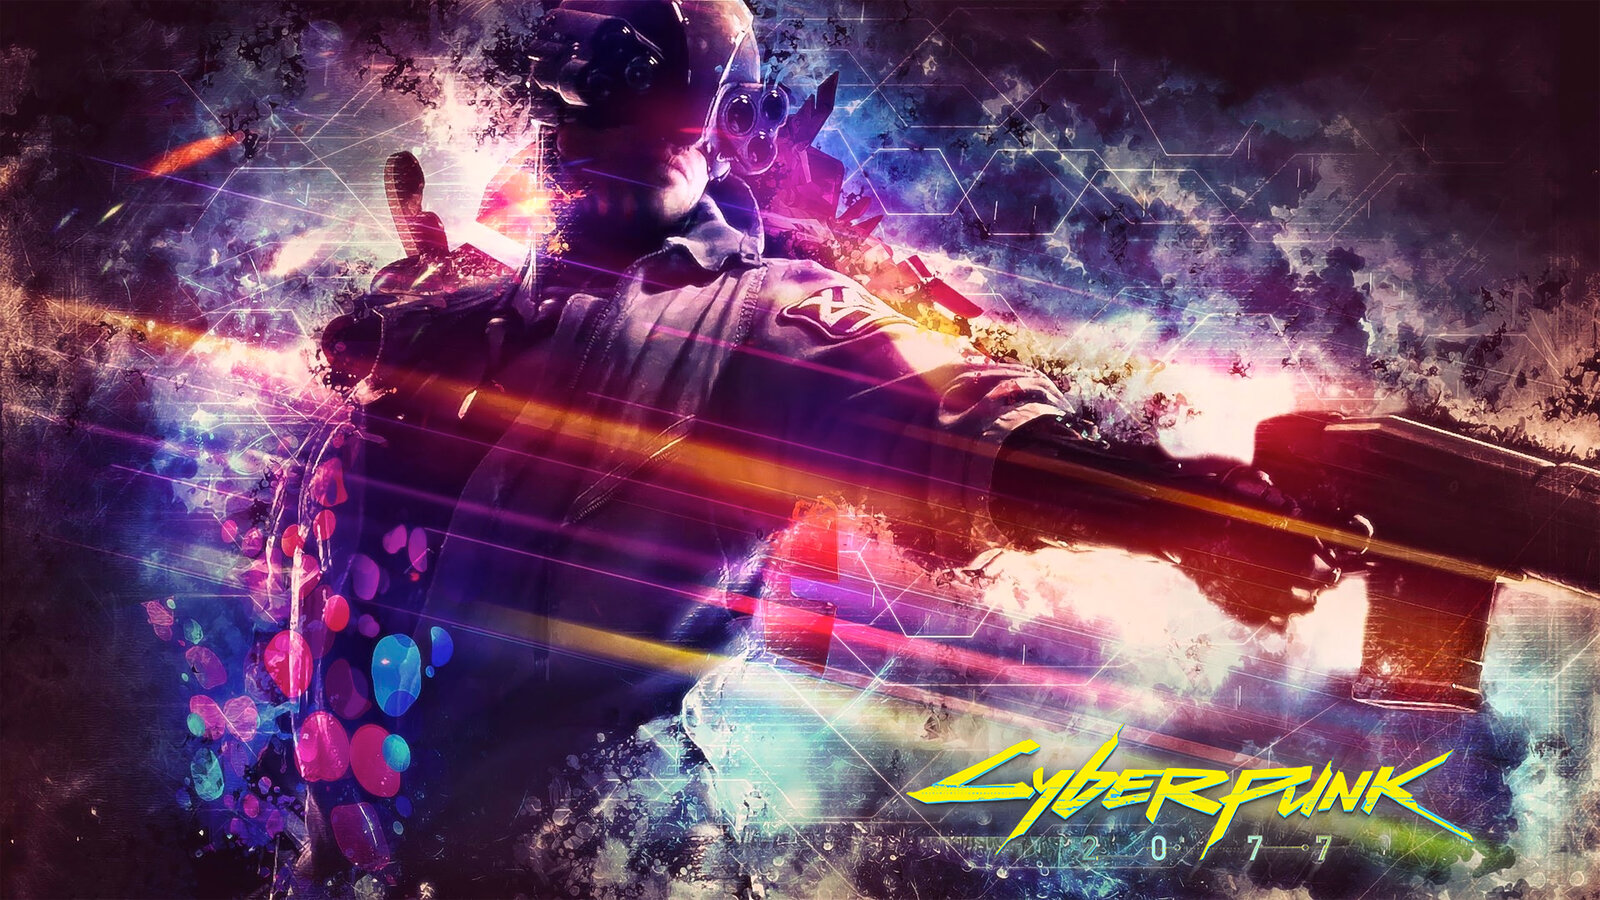 Cyberpunk-2077-4K-Wallpaper-2.jpg